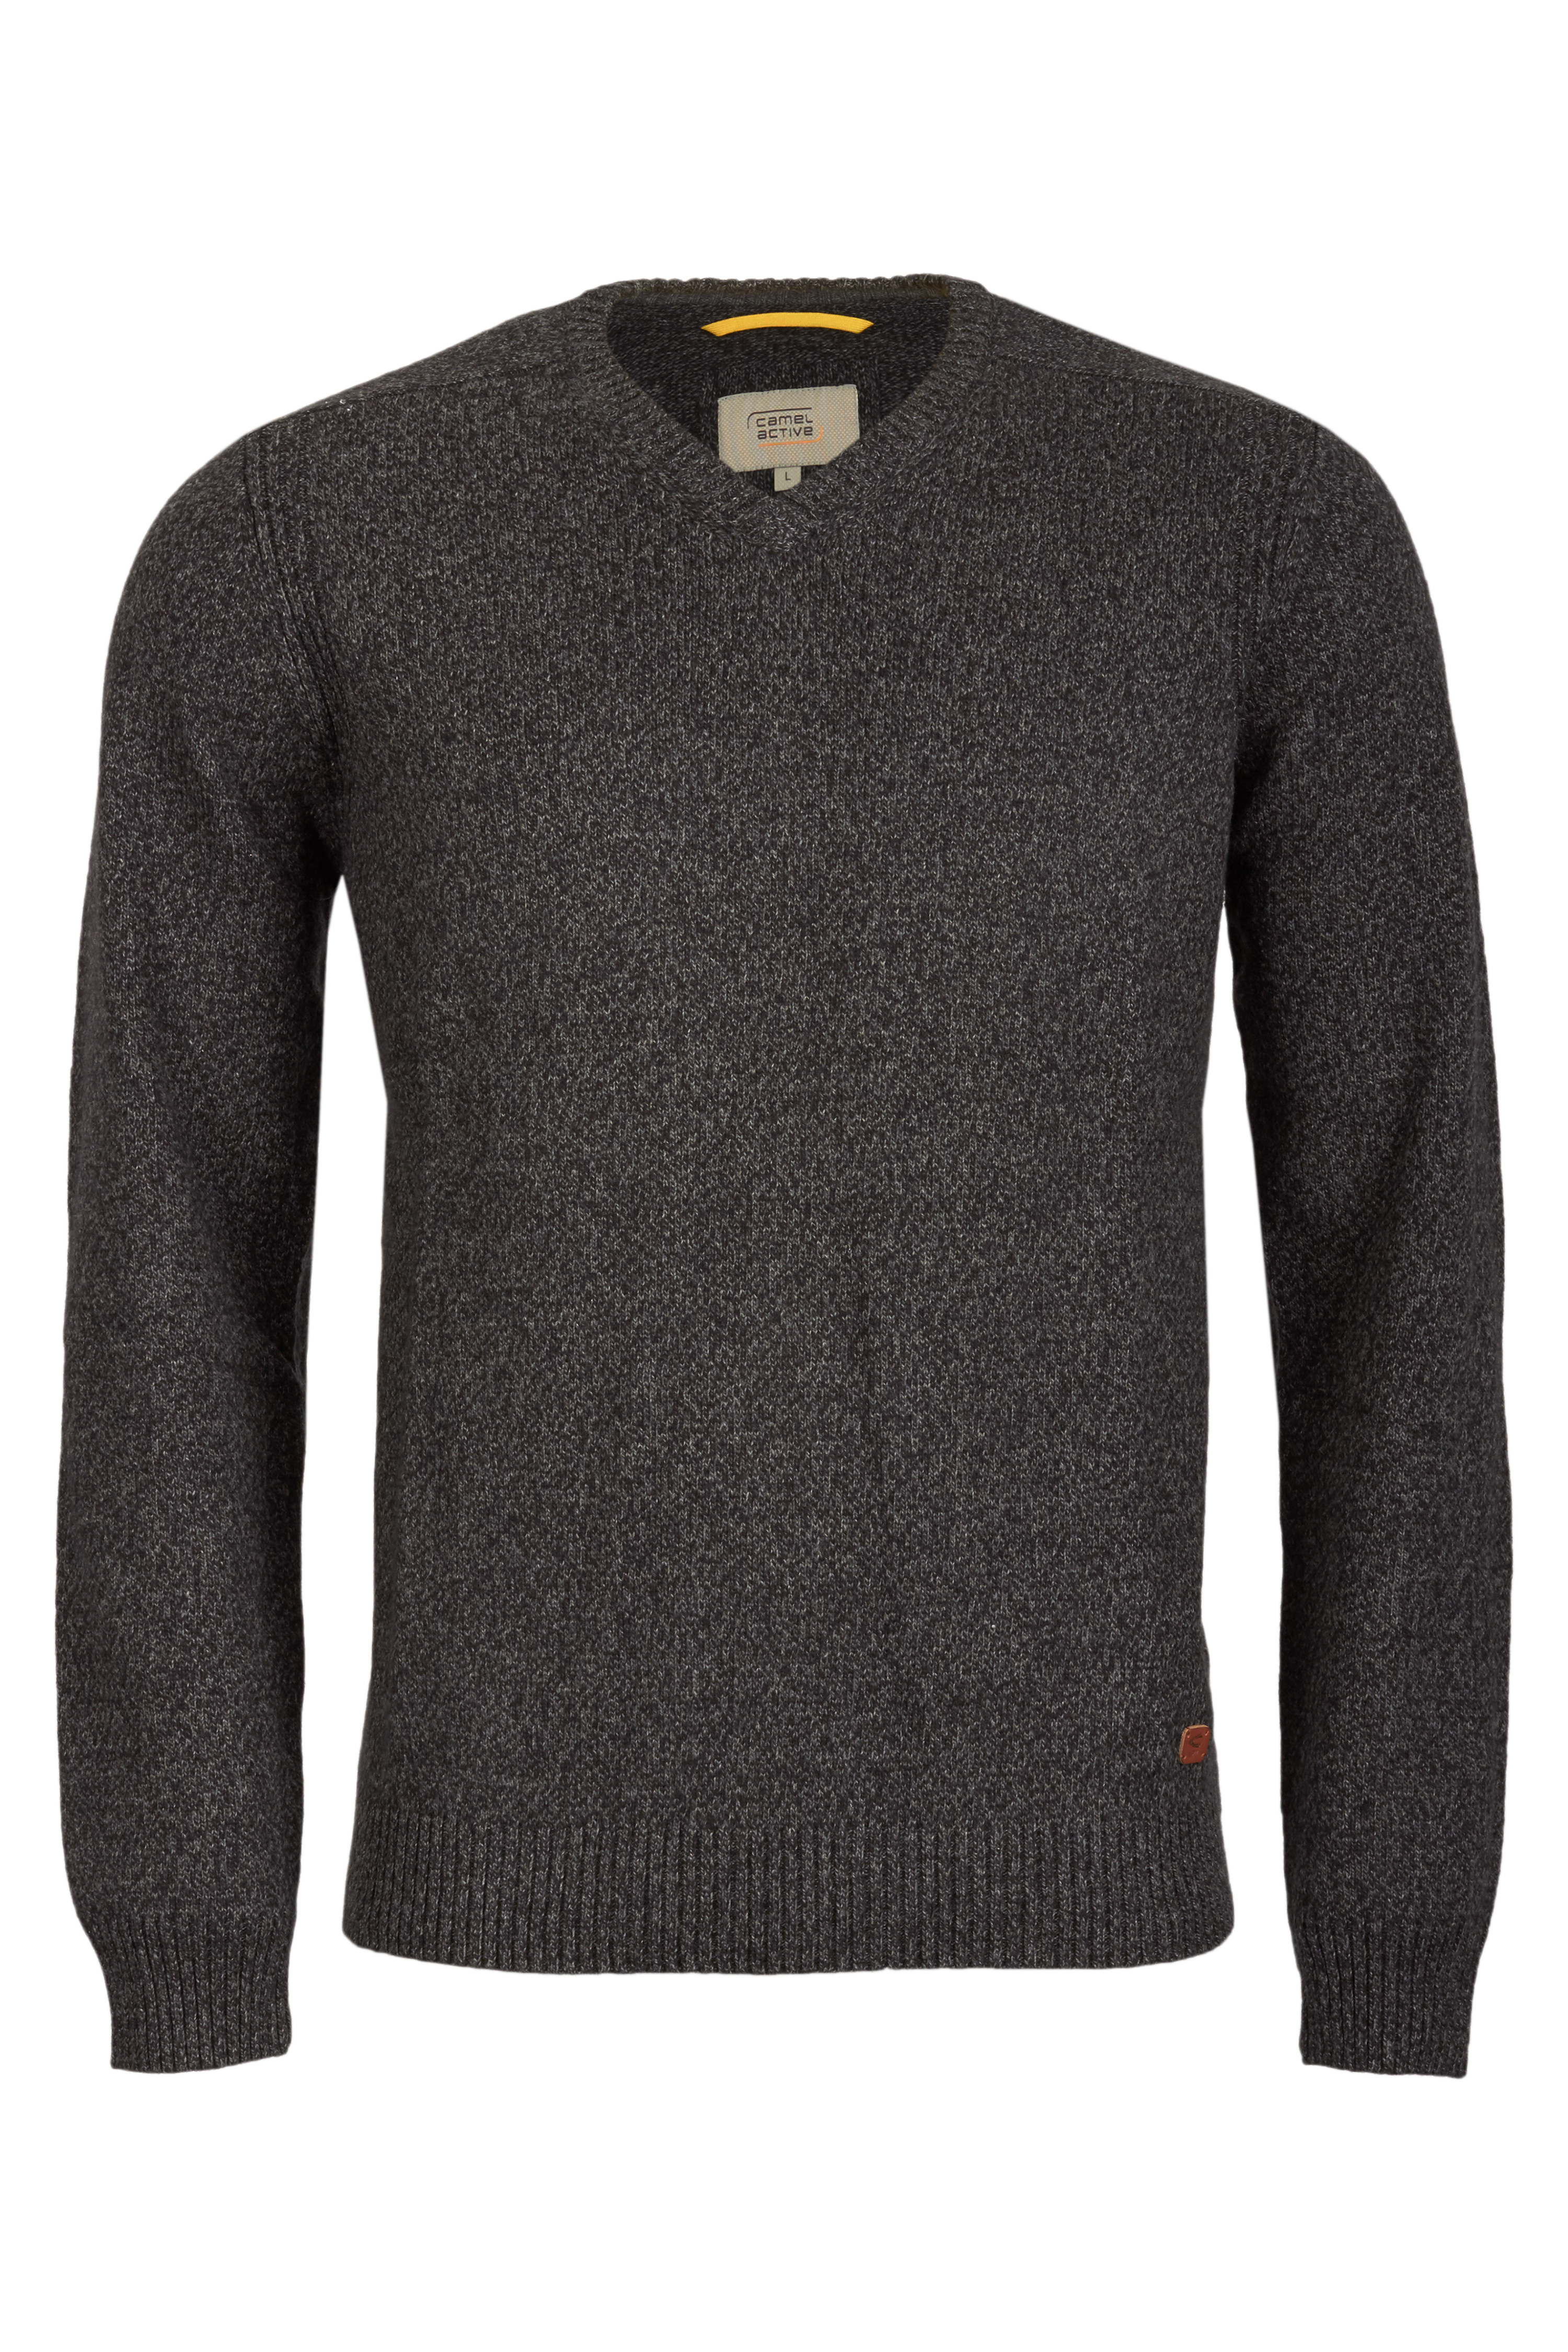 ActiveShoeWorld.de  camel active Pullover